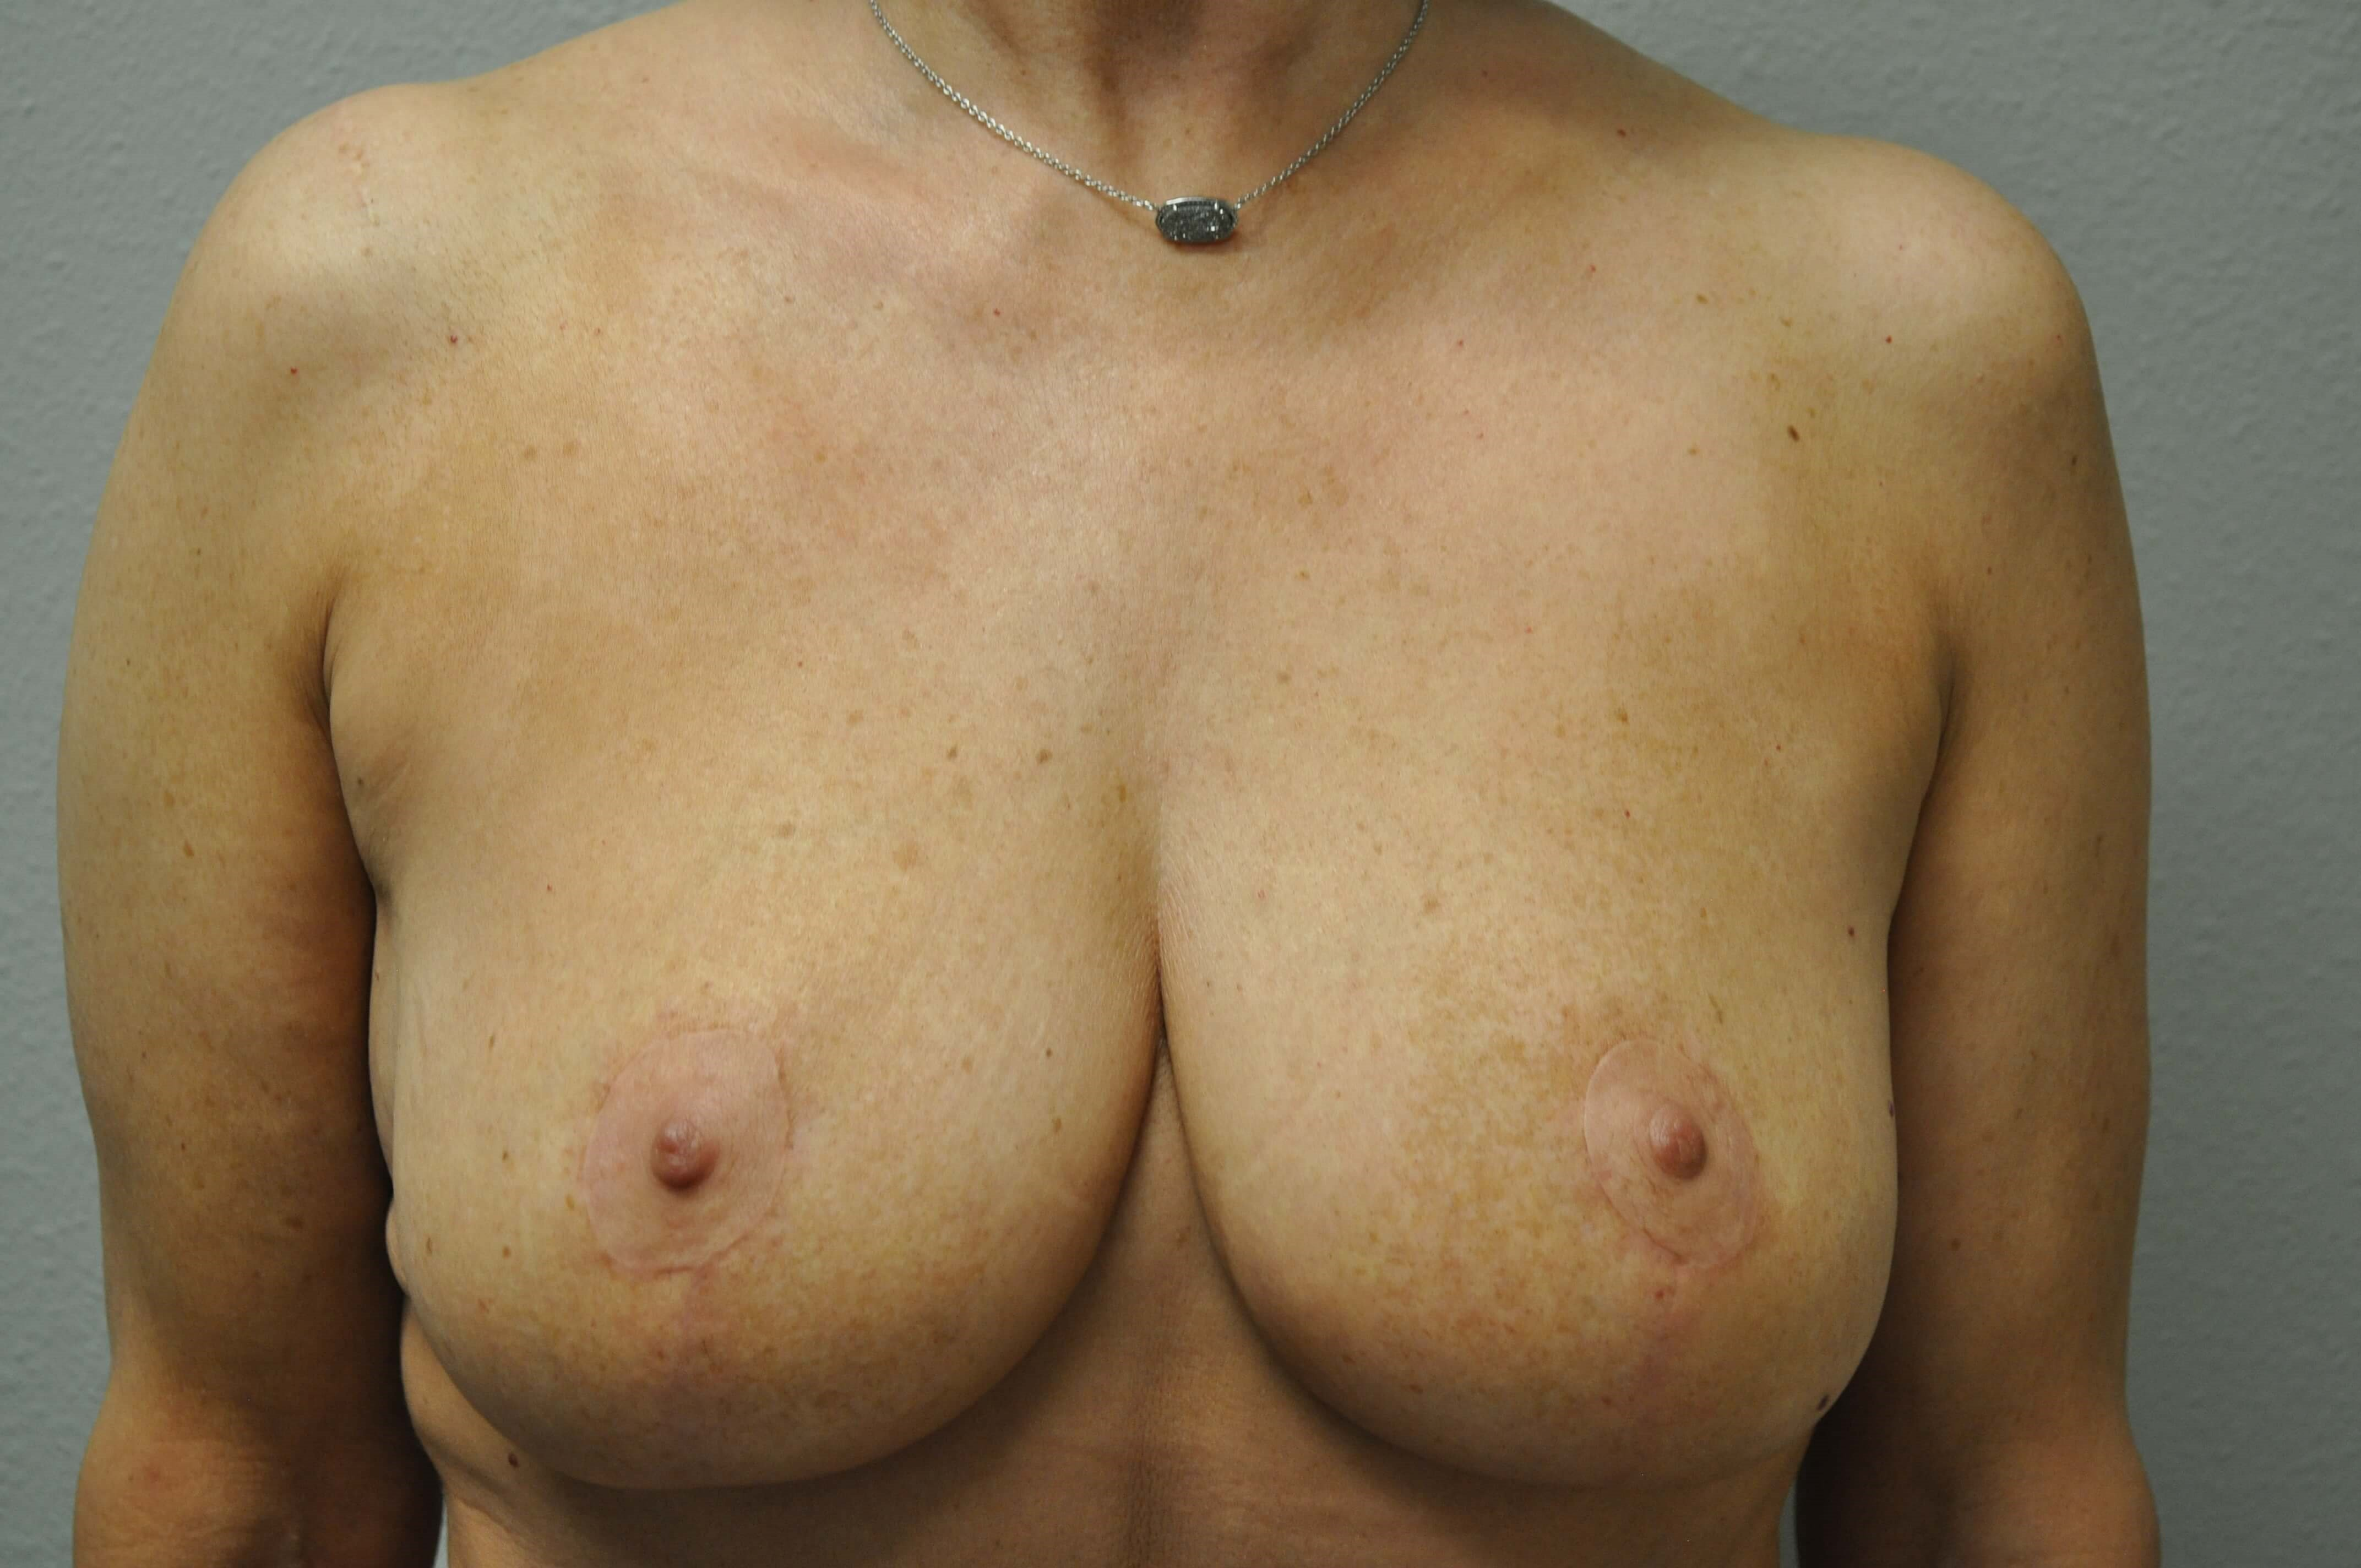 Front View of Breasts After